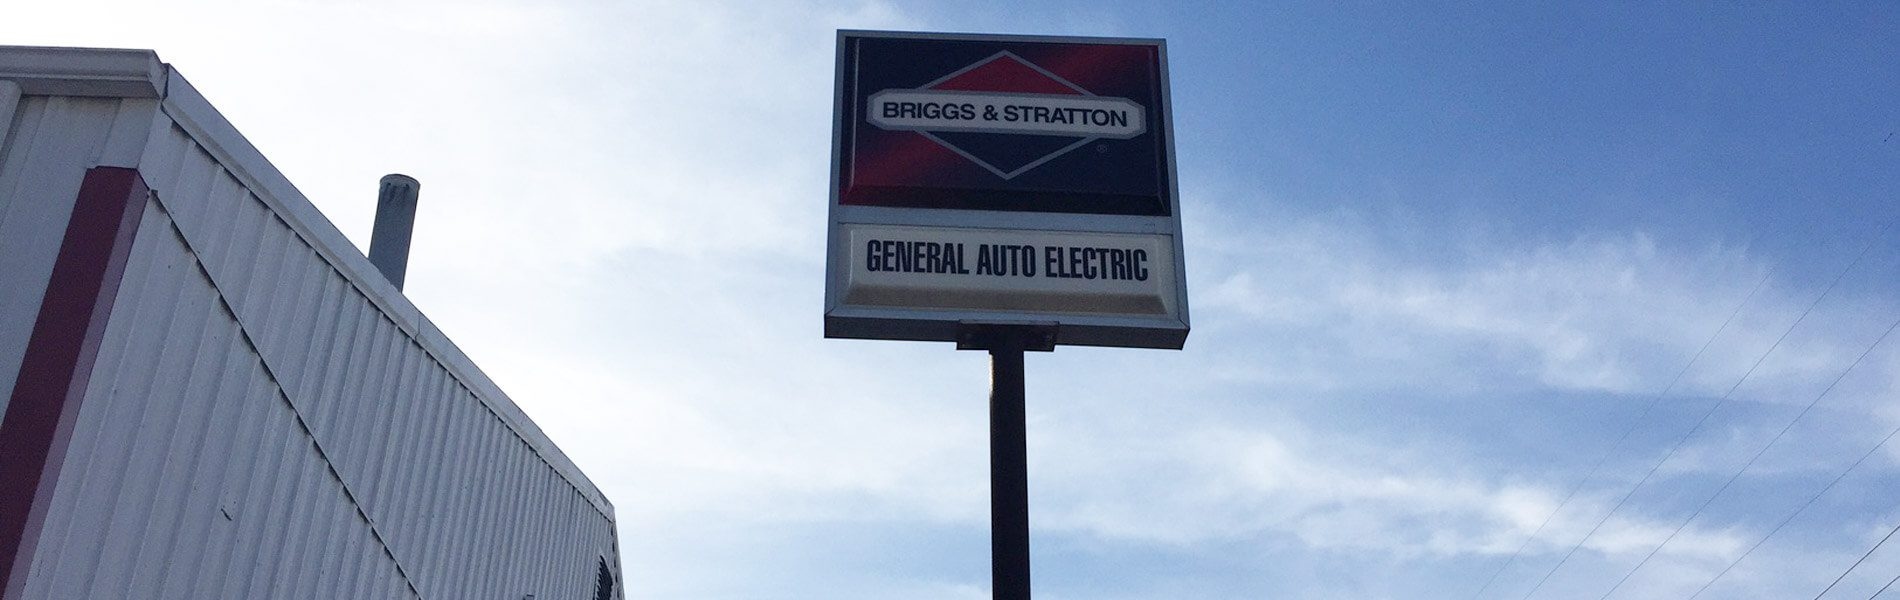 Local Small Engine and Outdoor Equipment Repair Shop in Wood River IL